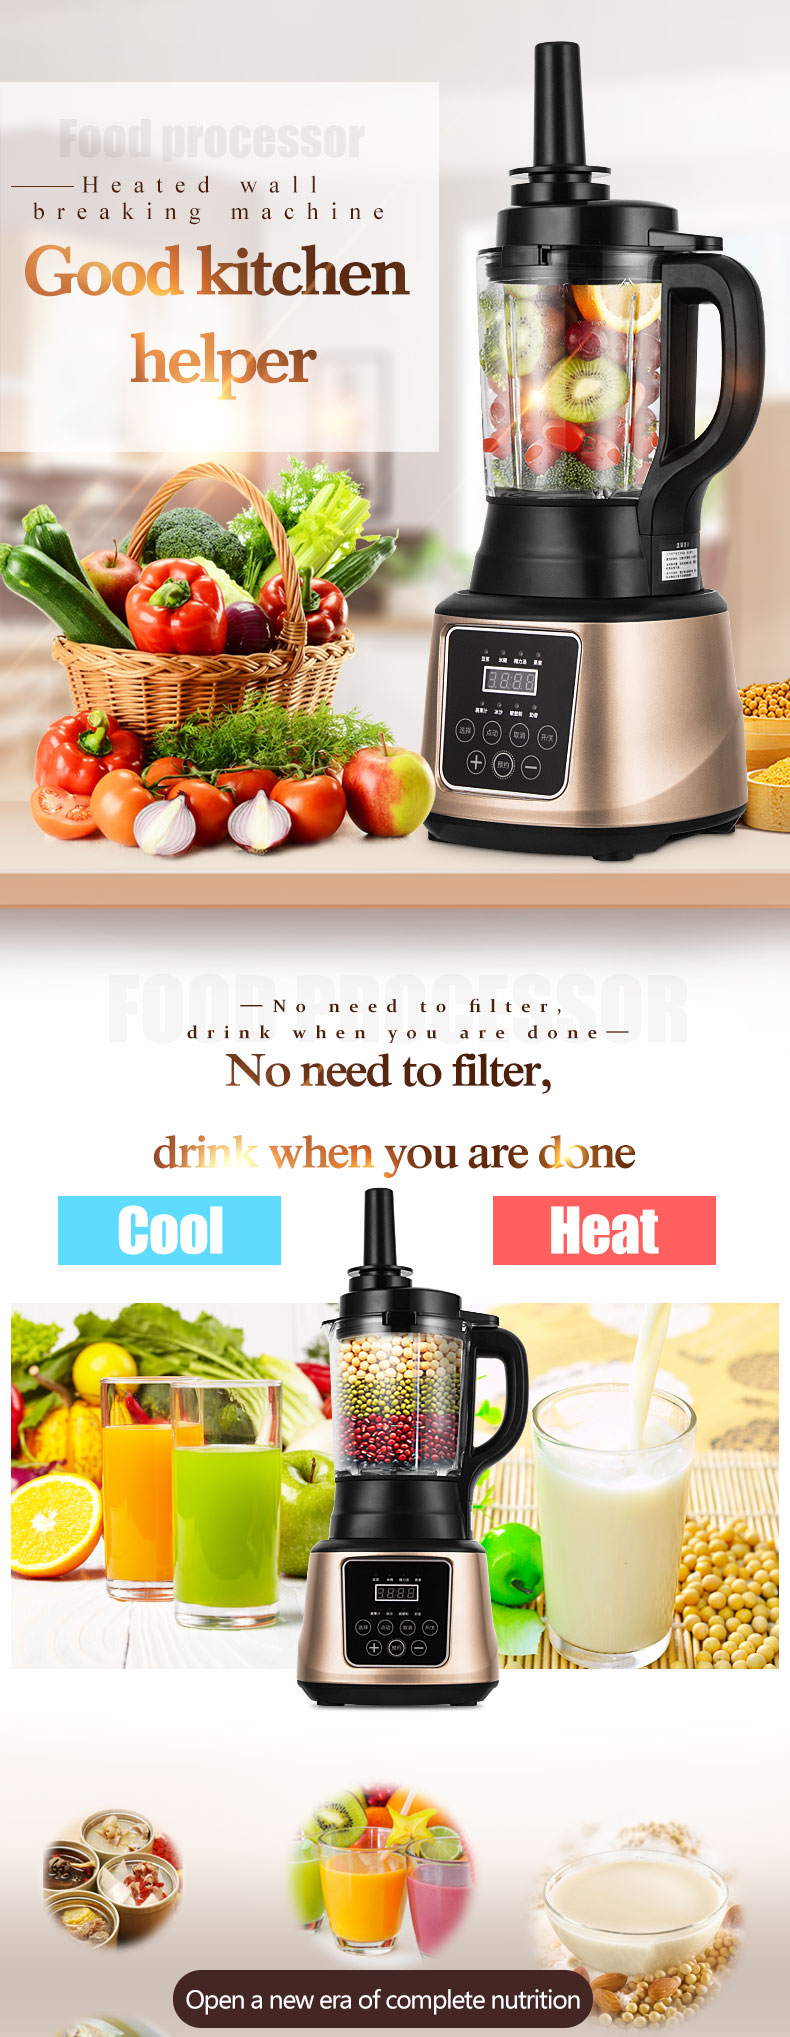 High quality Electrical Appliance  Electric Blender for home